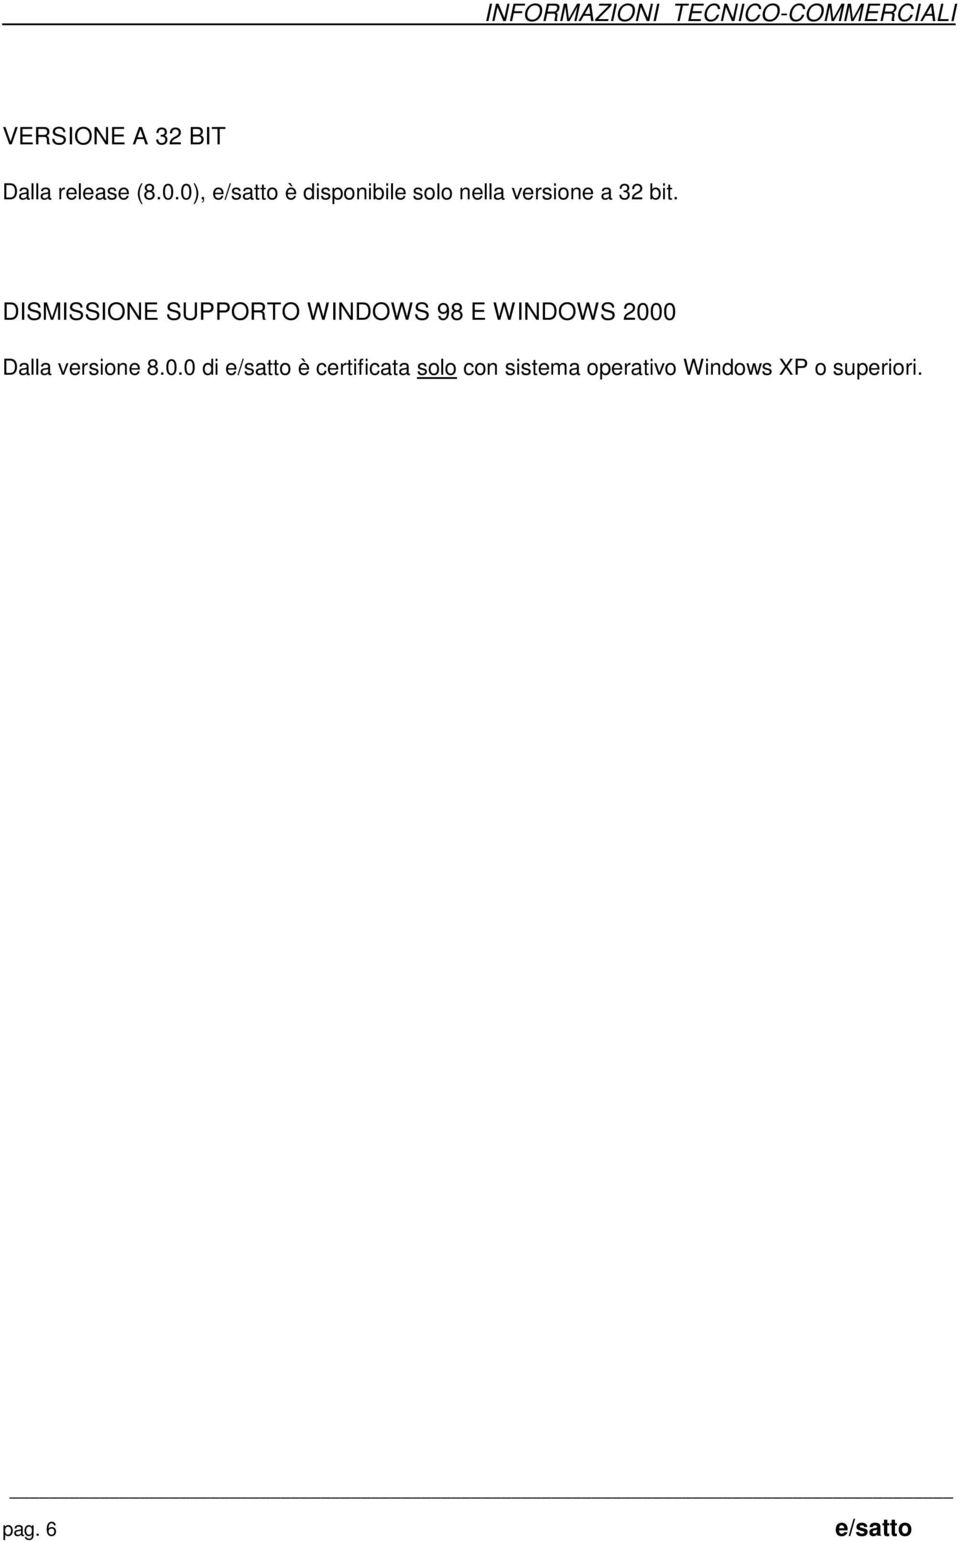 DISMISSIONE SUPPORTO WINDOWS 98 E WINDOWS 2000 Dalla versione 8.